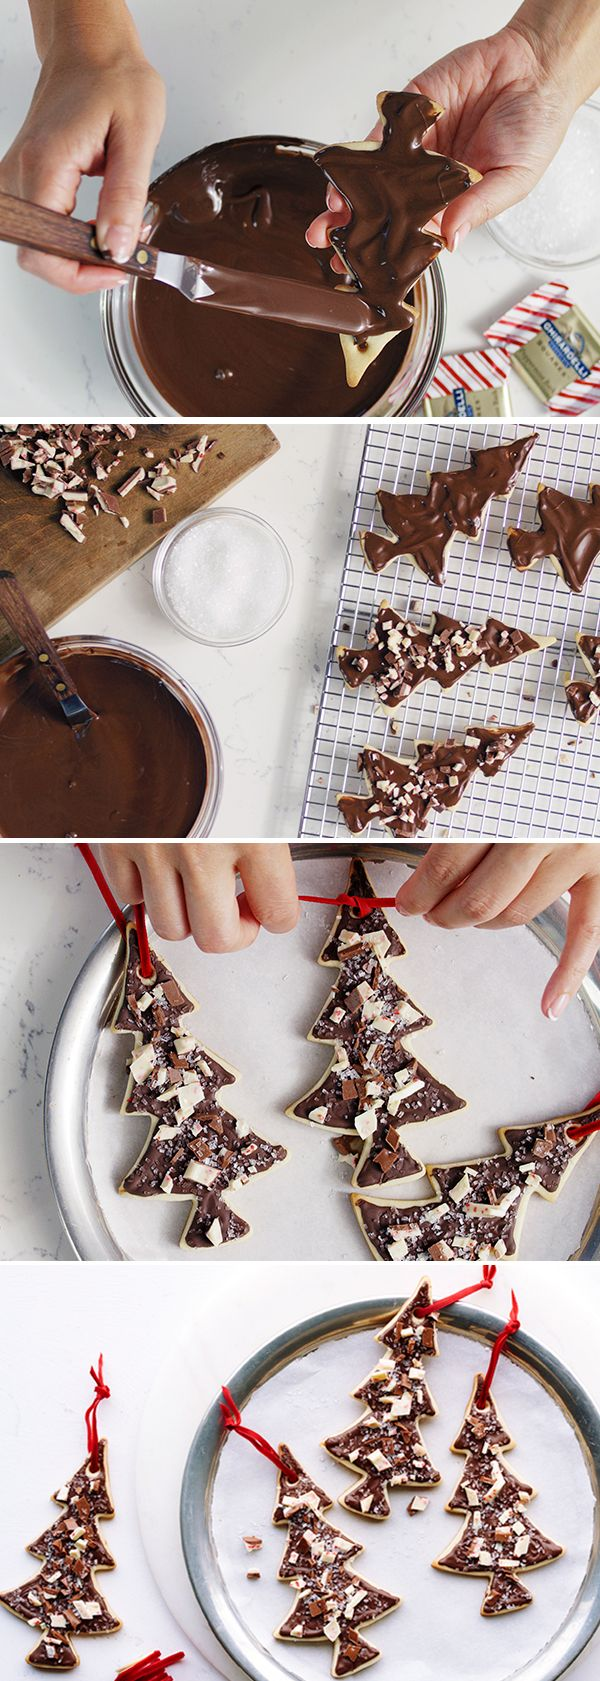 Watch YouTuber Caroline Artiss take you through the step-by-step prep for these sweet & simple chocolate-frosted tree cookies. The #SweetestSecret to making them truly shine? Crumbling our signature Peppermint Bark chocolate on top. Read more at http://www.ghirardelli.com/holiday-baking#FhvHW5EqUOl7iC8j.99